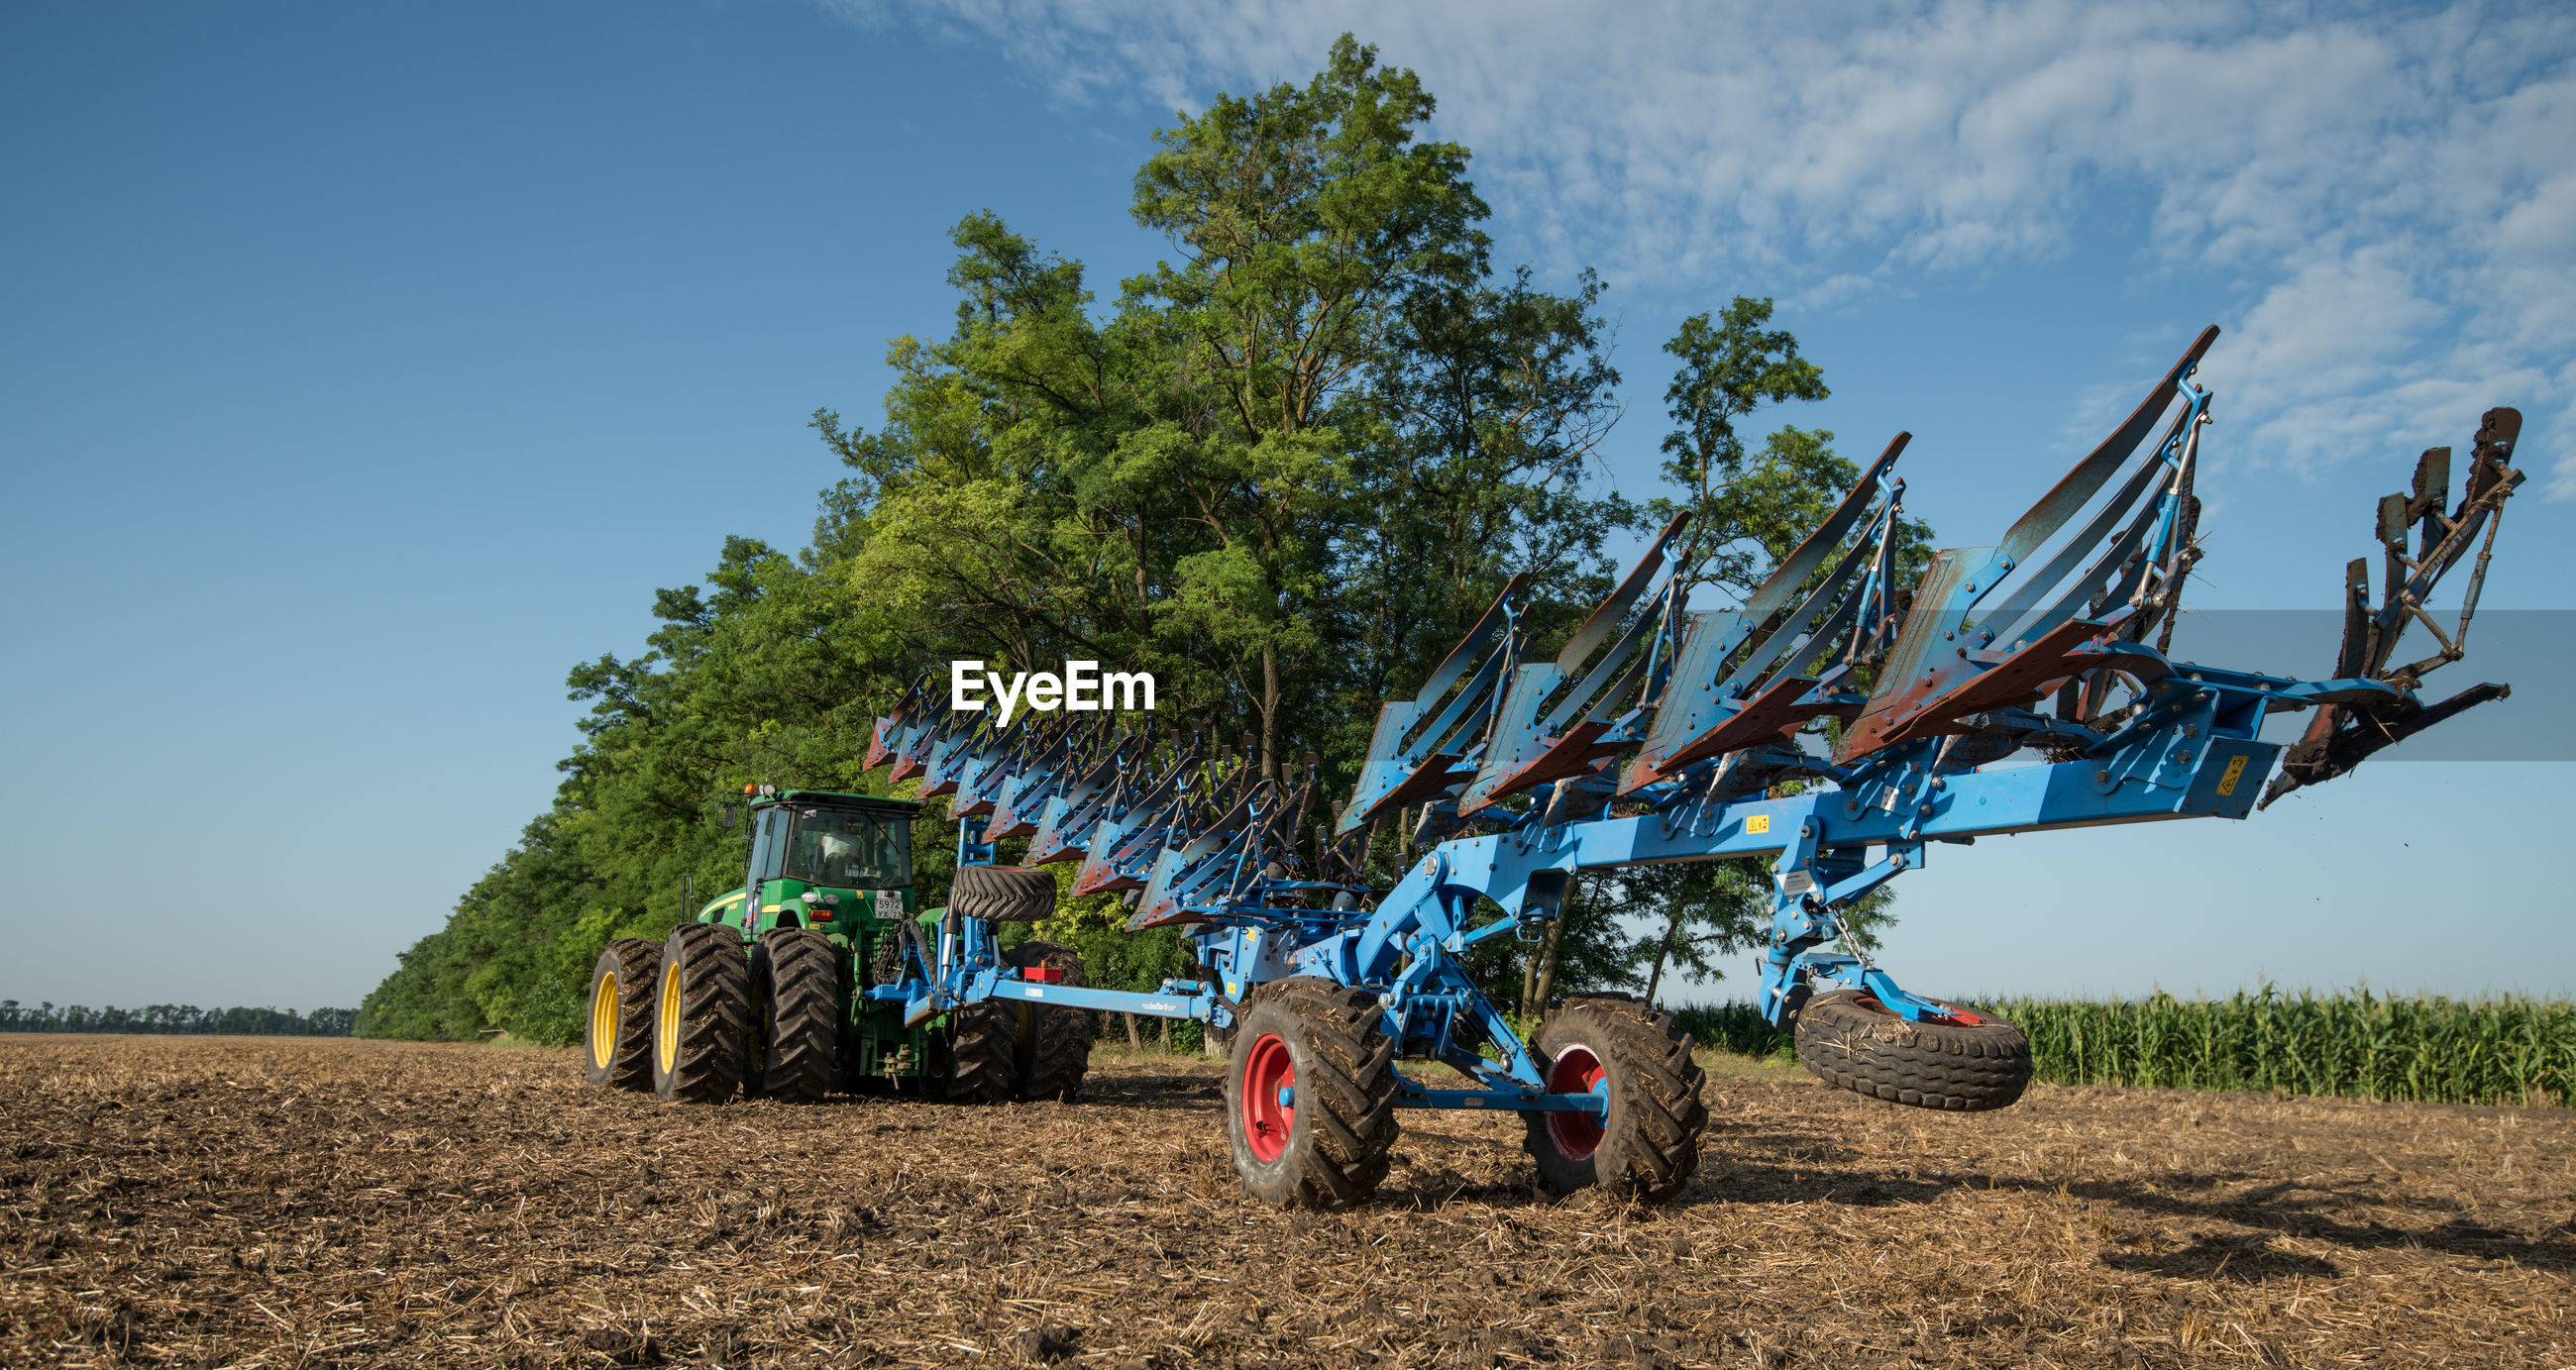 Low angle view of machinery and tractor on field against sky